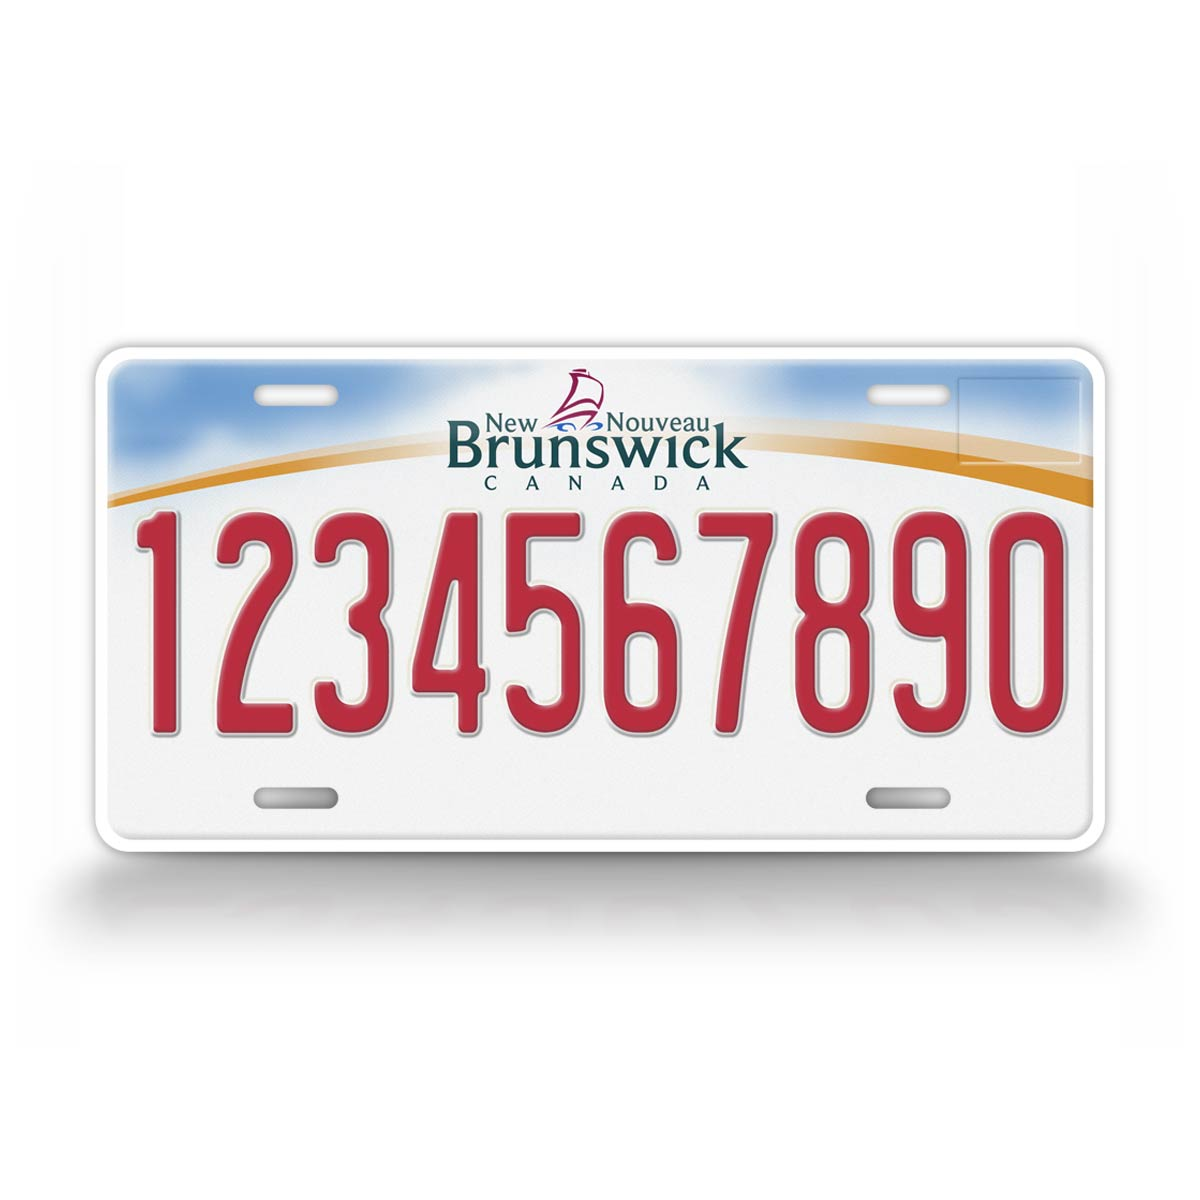 Personalized Text New Brunswick New Nouveau License Plate